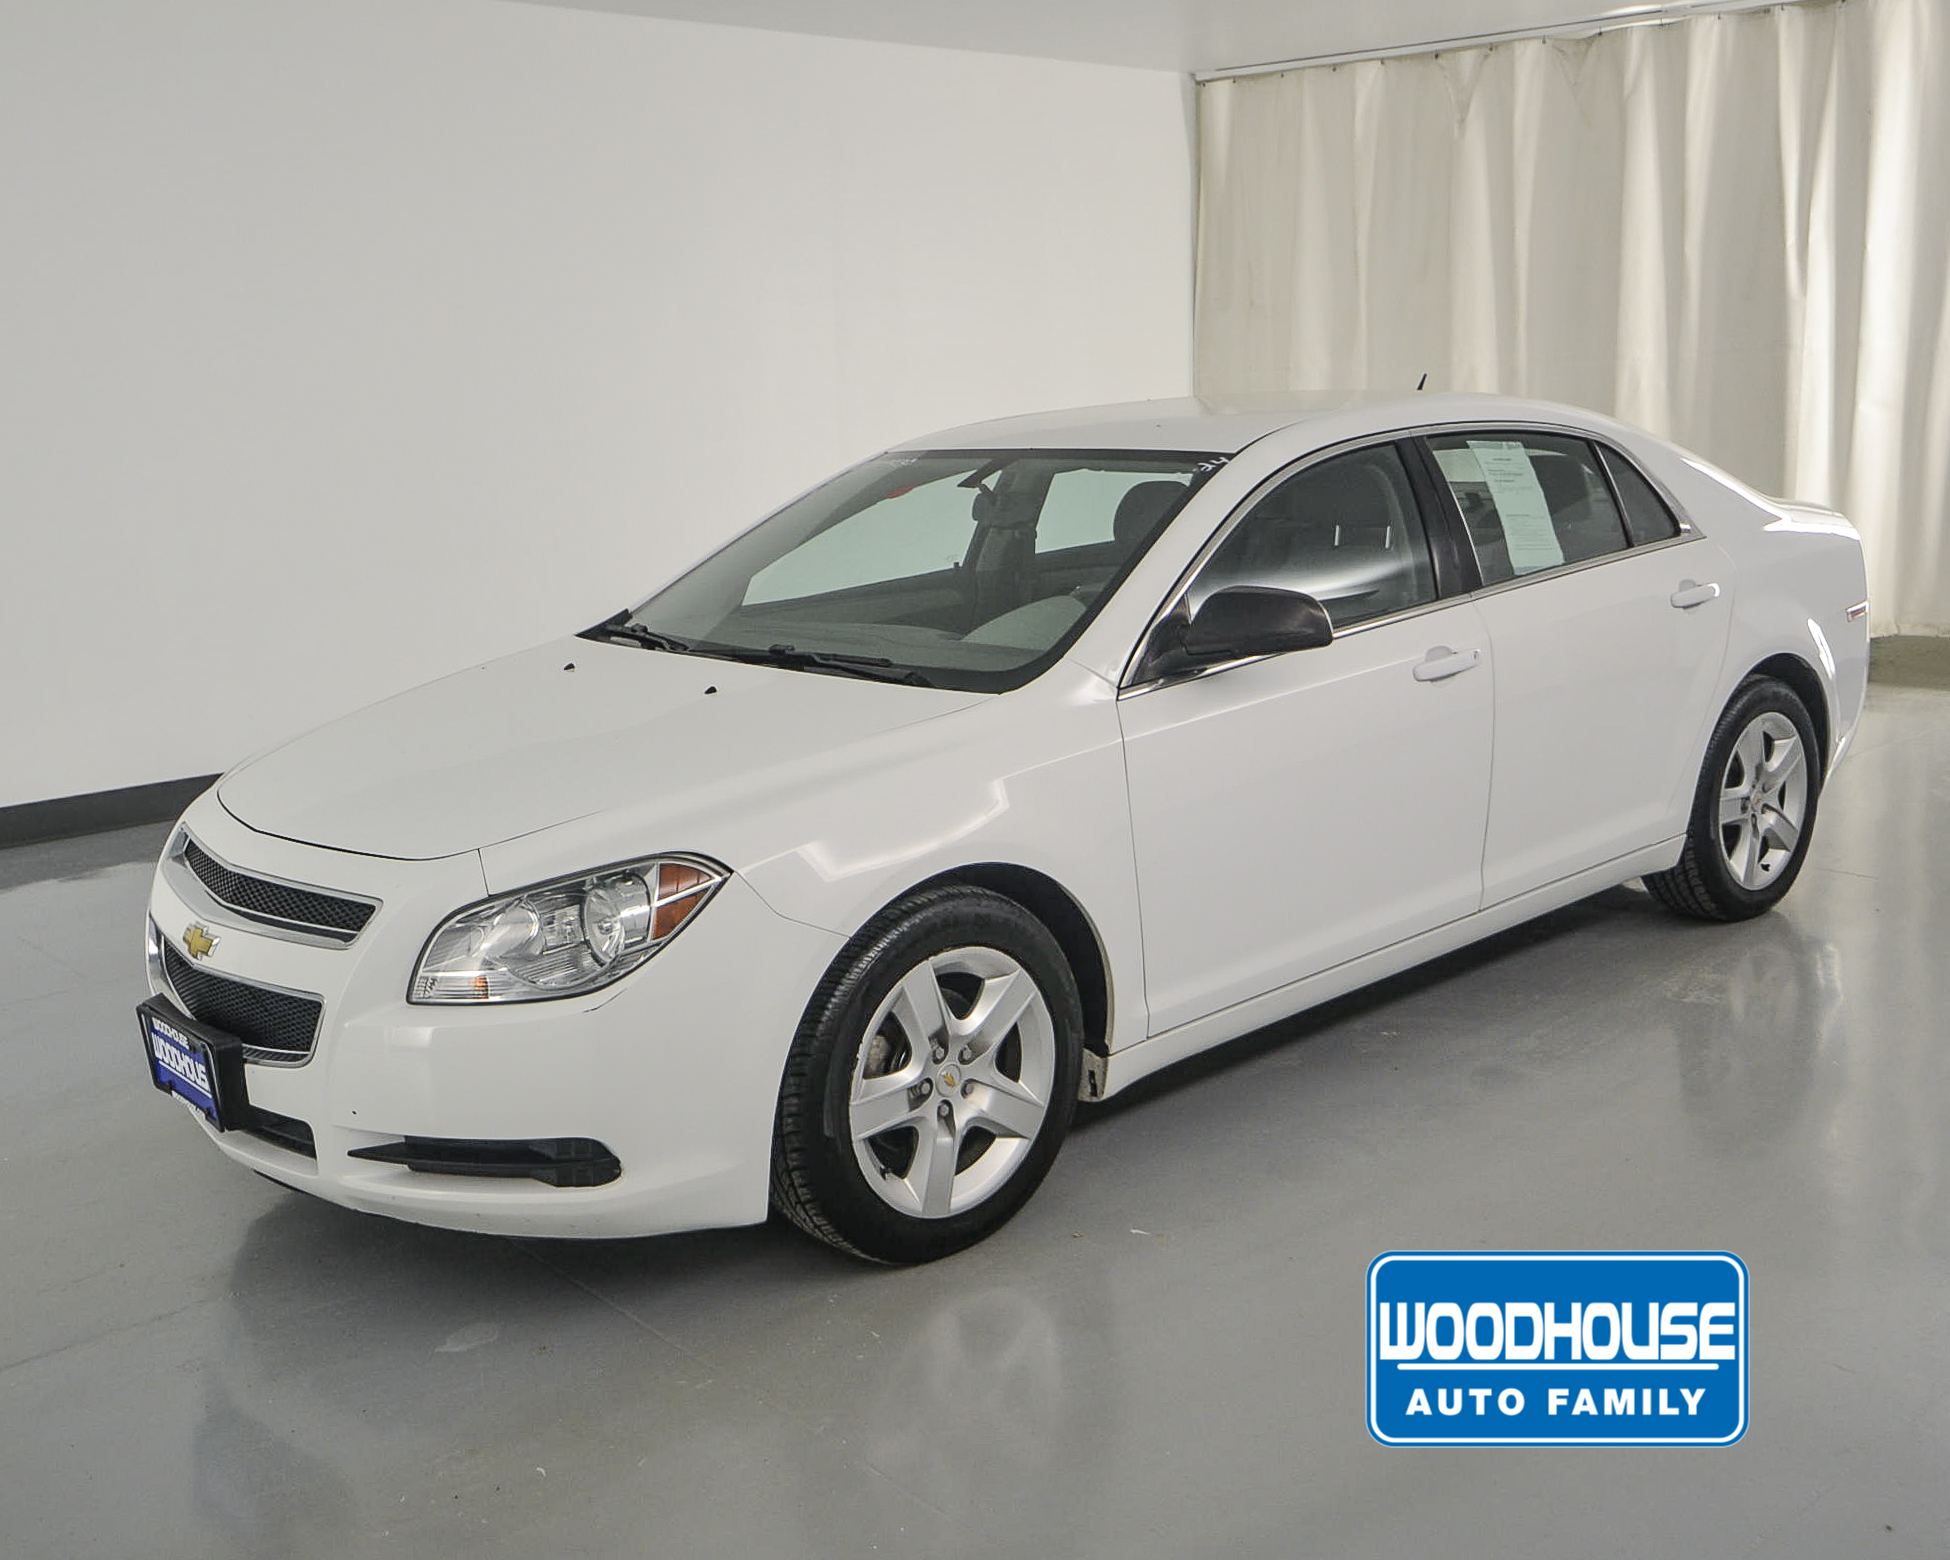 2011 Chevy Malibu For Sale >> Woodhouse Used 2011 Chevrolet Malibu For Sale Chevy Buick